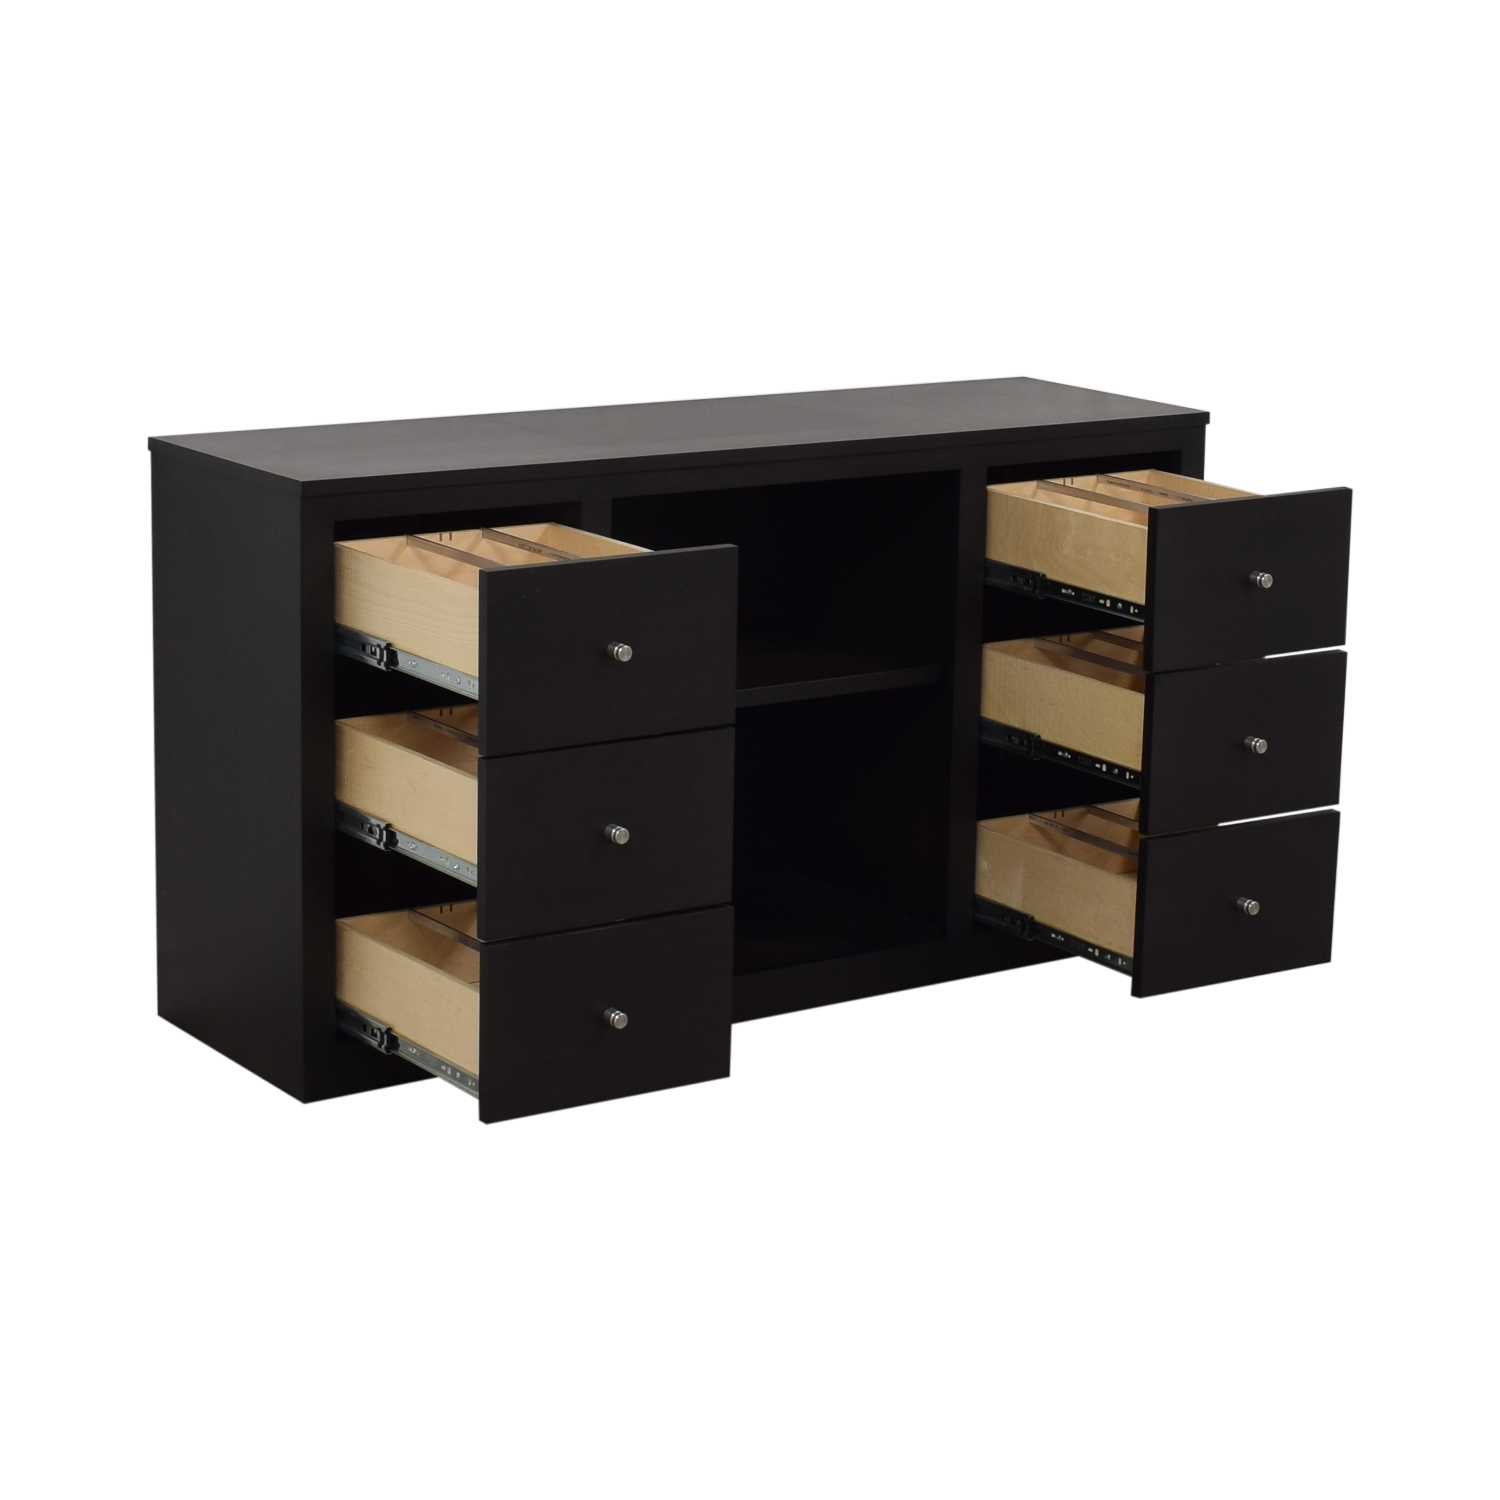 Room & Board Room & Board Woodwind Maple With Charcoal Stain Media Cabinet black